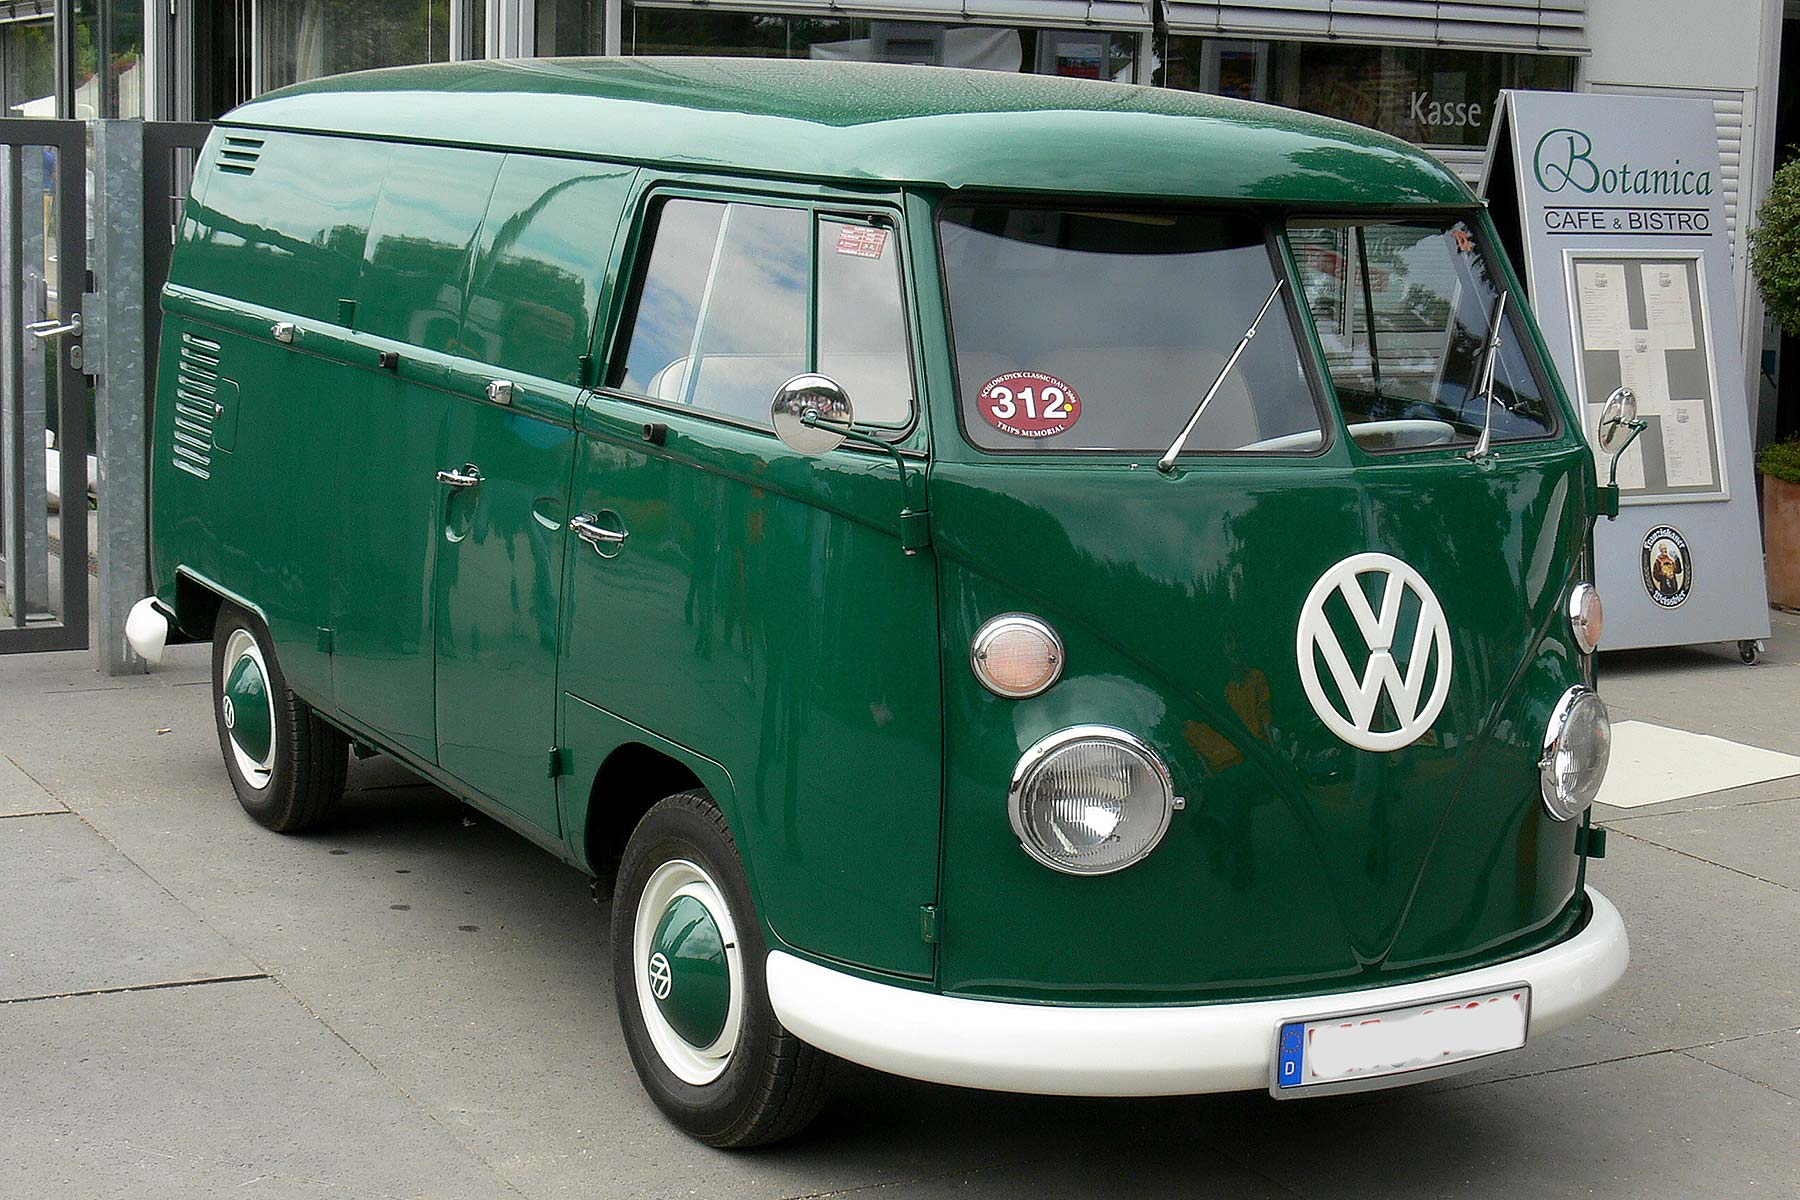 Great Motoring Disasters VW Beetle replacement